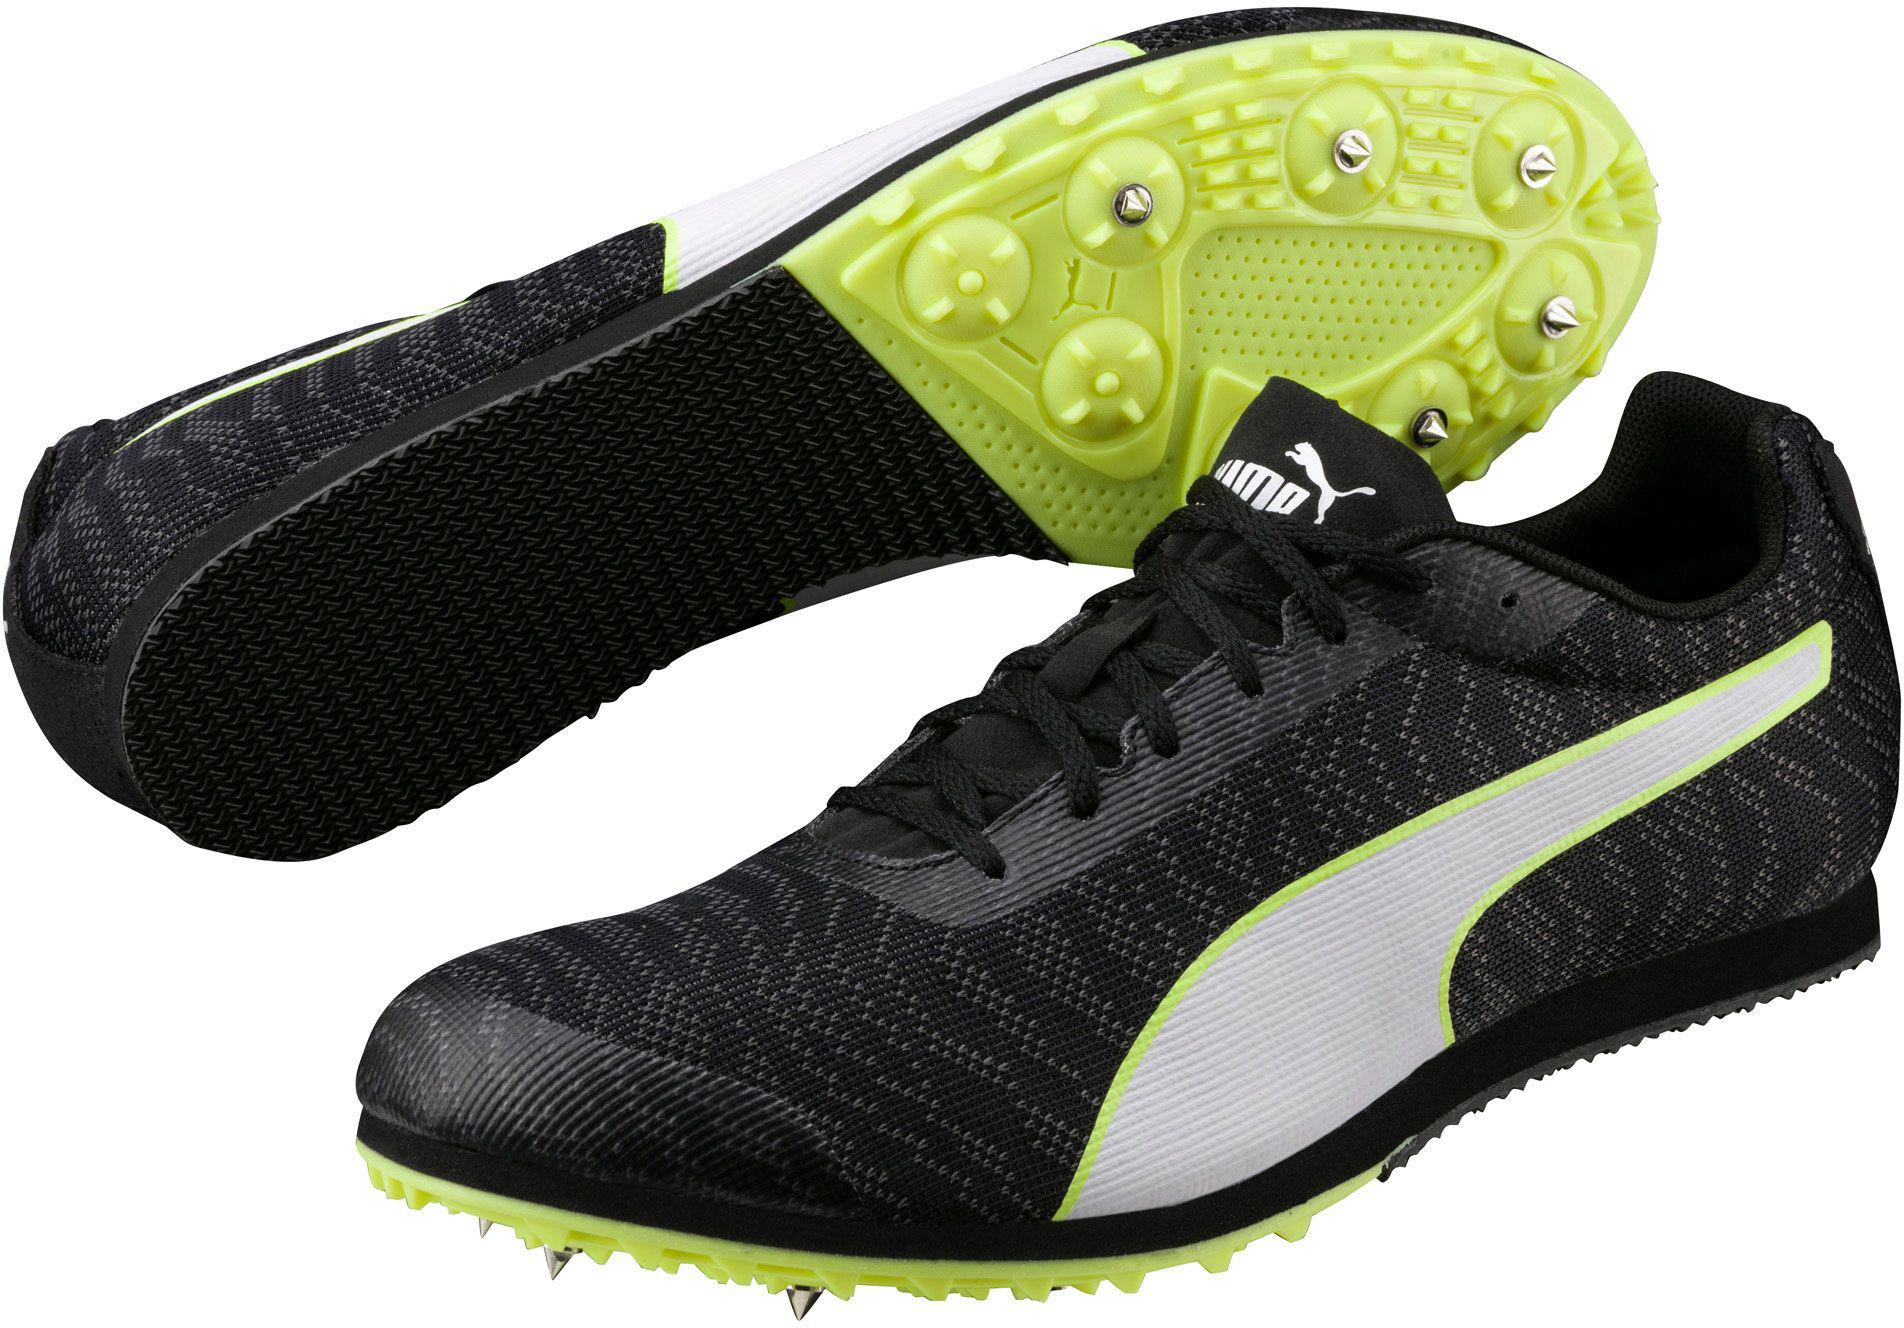 Lyst - PUMA Evospeed Star 6 Track And Field Shoes in Black for Men db3557be8